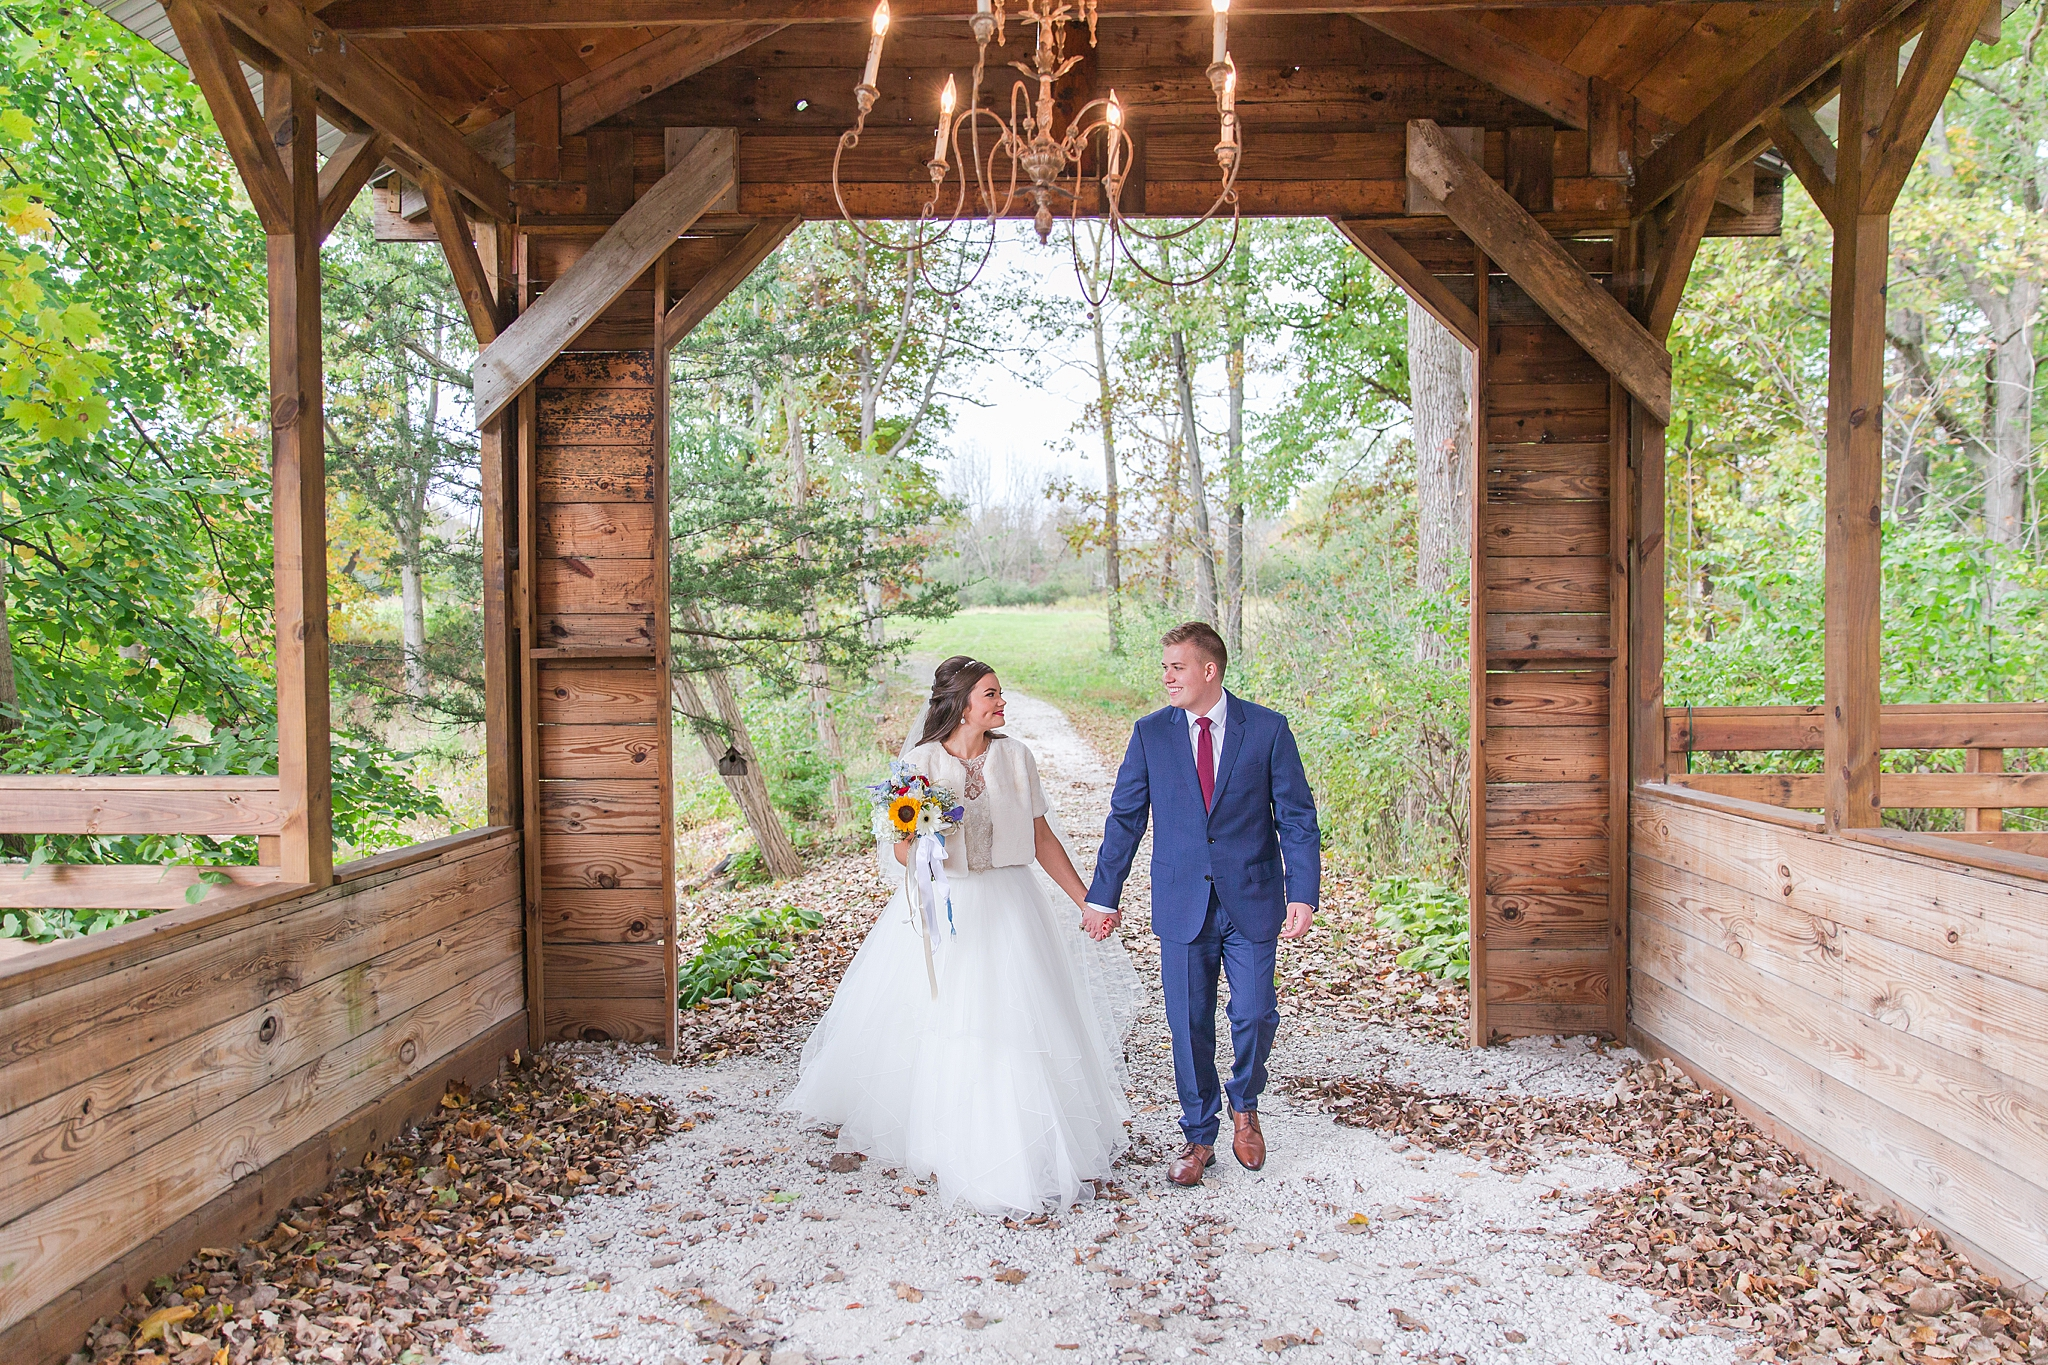 rustic-whimsical-wedding-photos-the-vale-royal-barn-in-fenton-michigan-by-courtney-carolyn-photography_0027.jpg